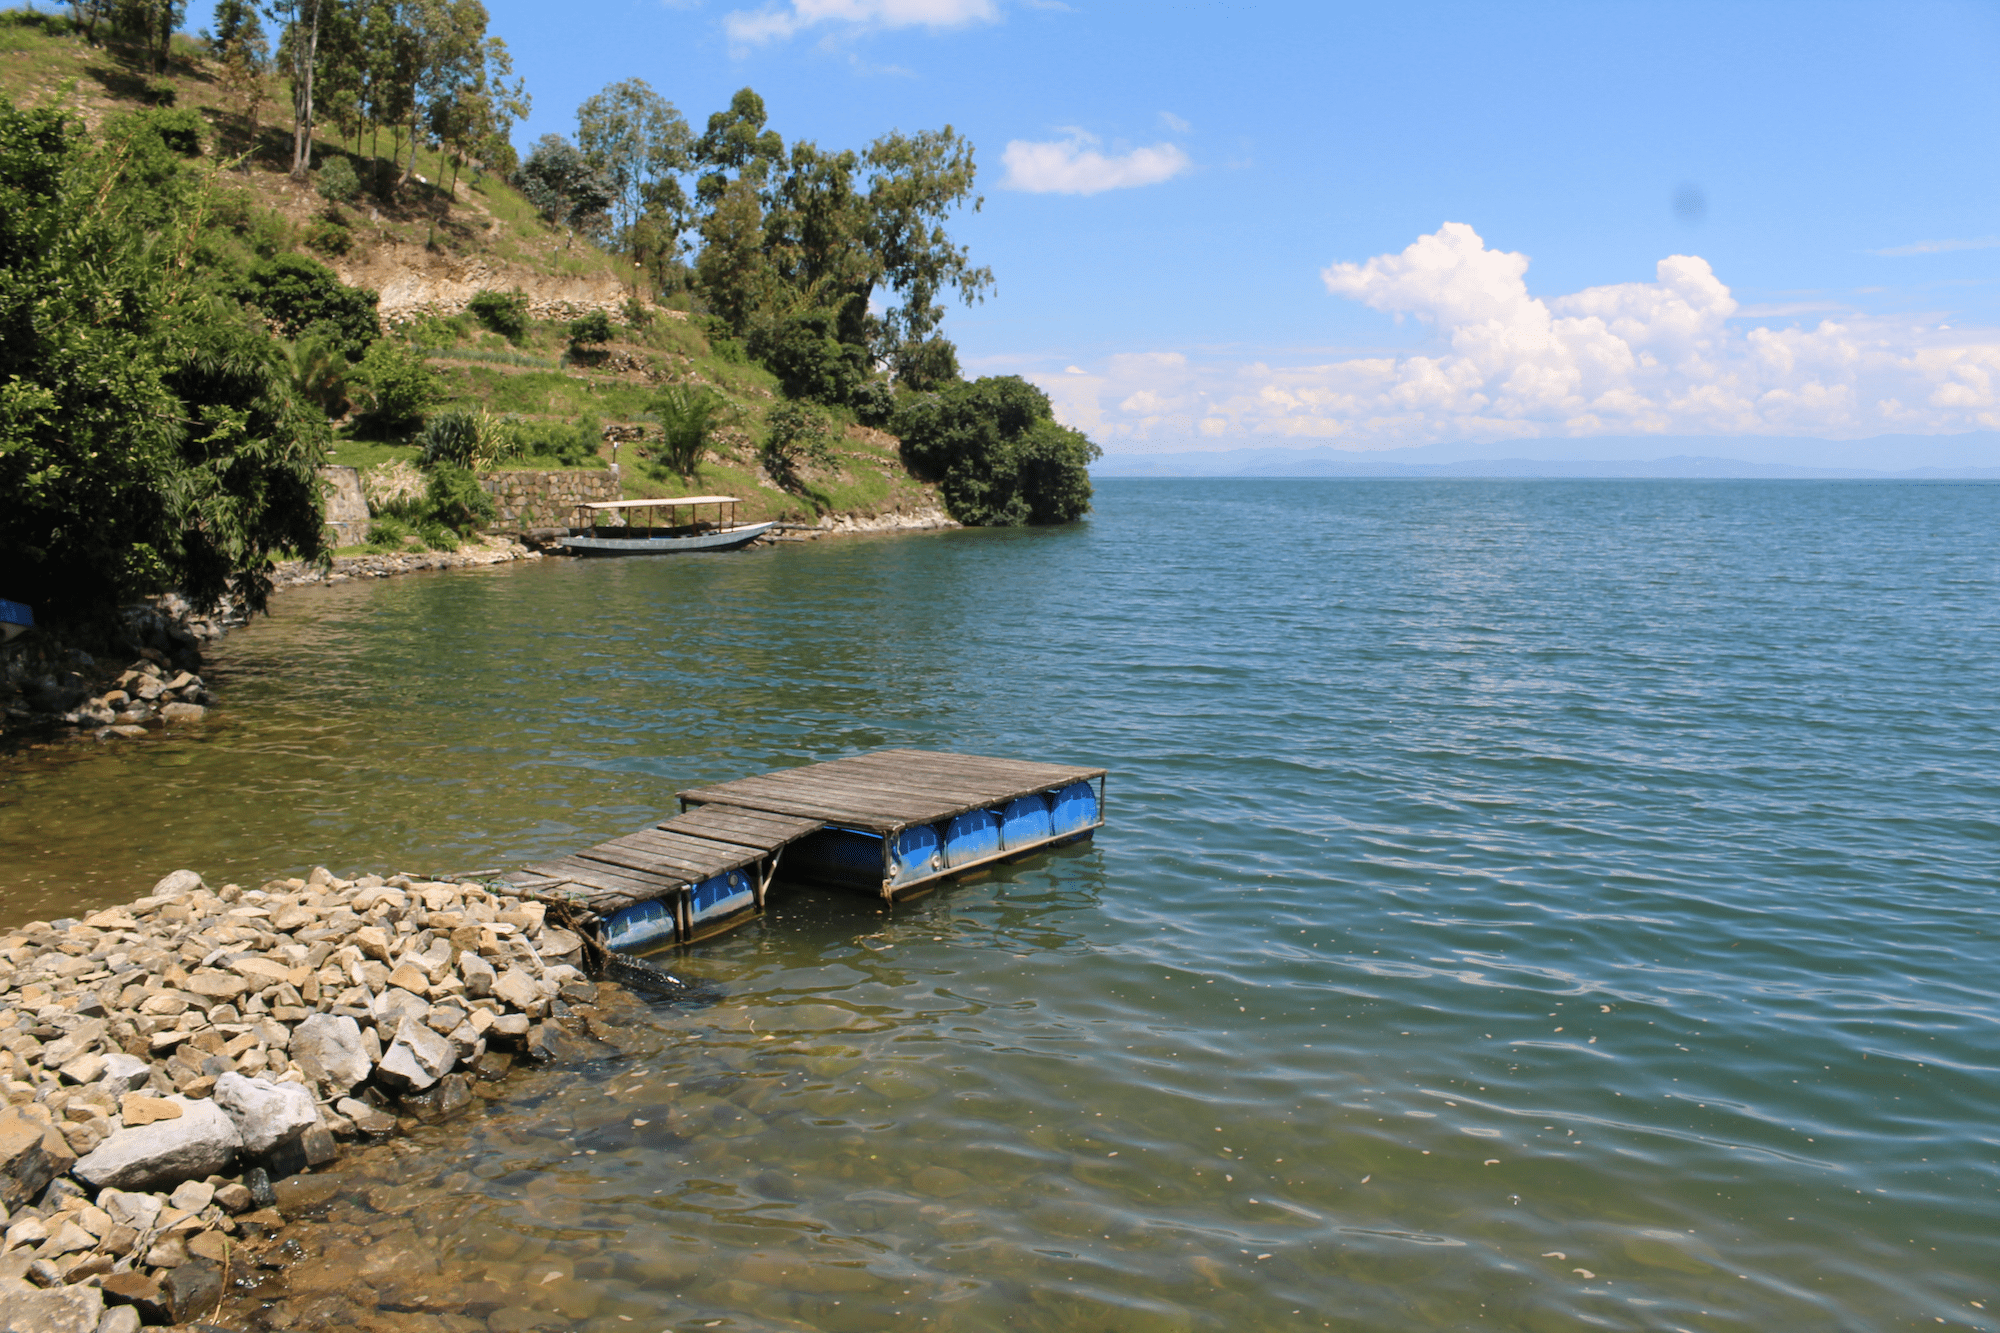 Tourism Development of Kivu Belt